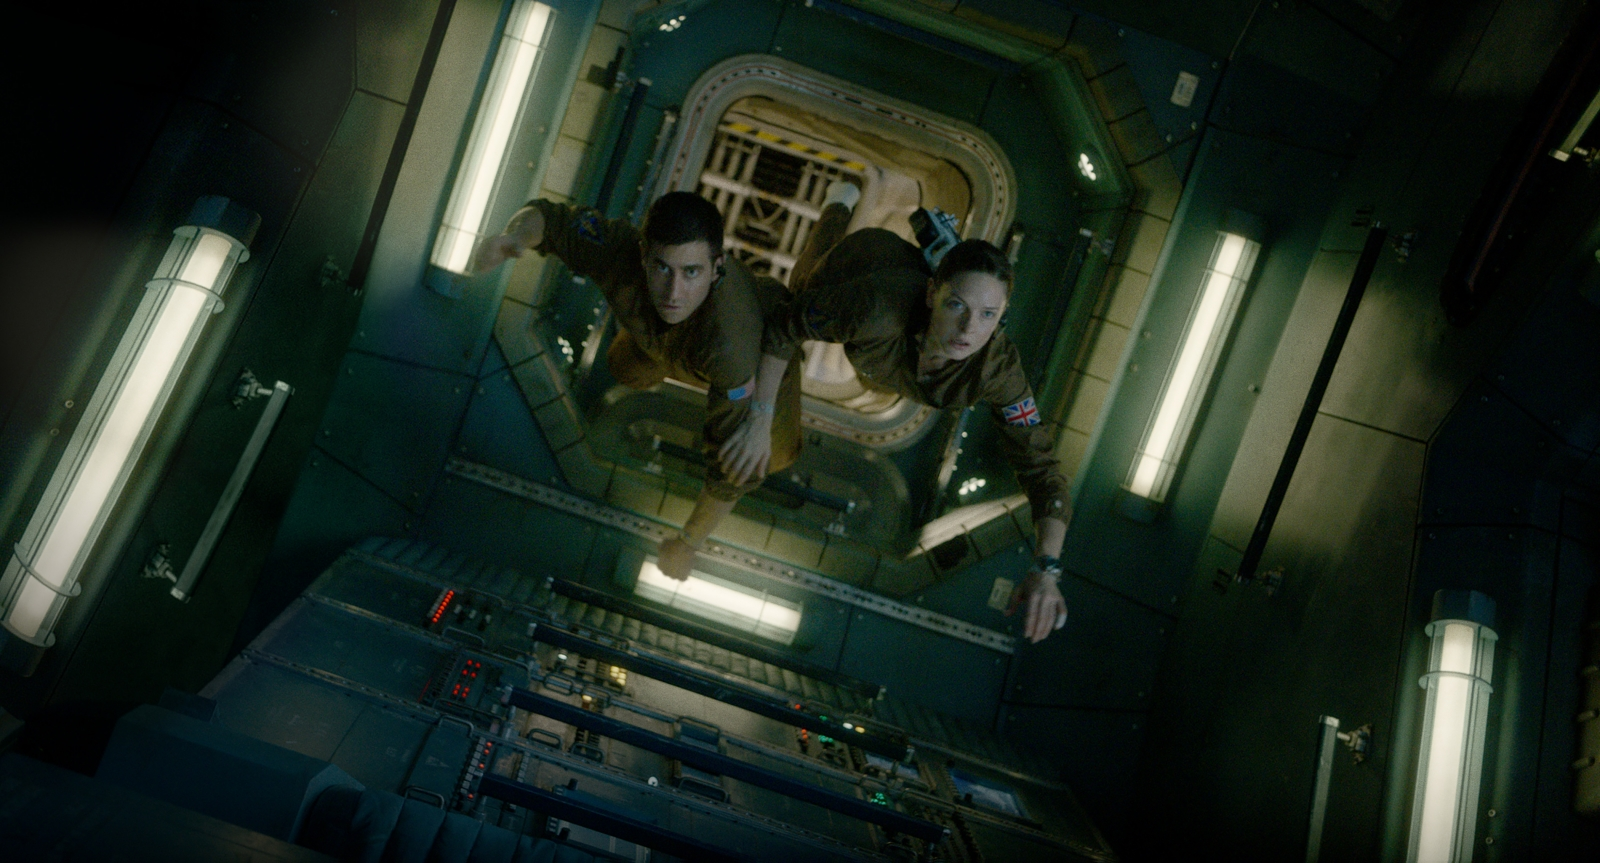 'Life' Review: This A-List 'Alien' Rip-Off is Seriously DOA